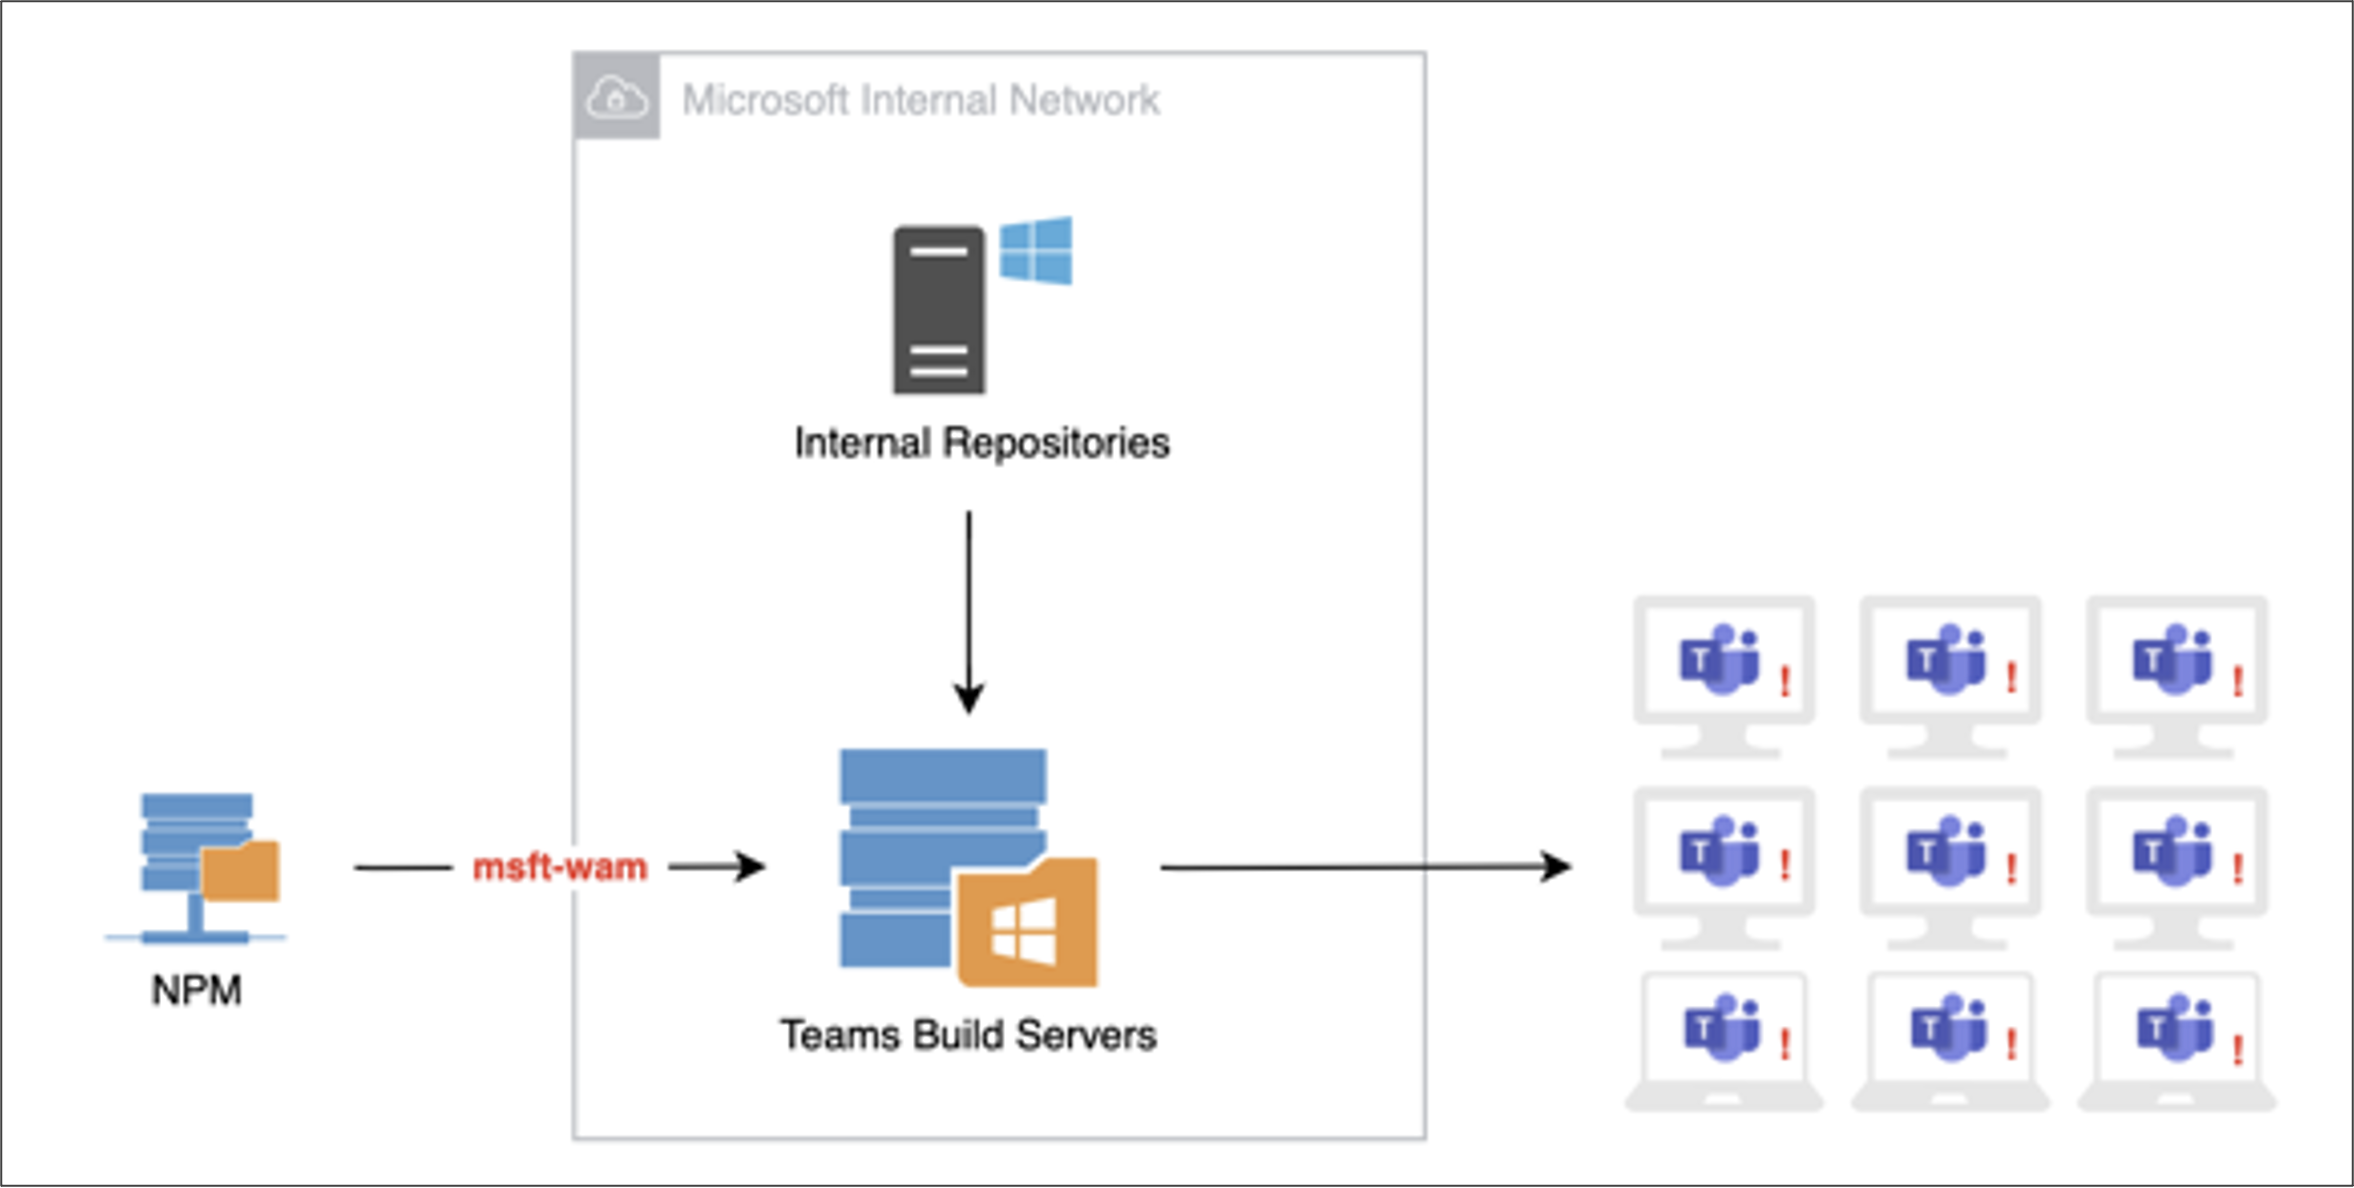 Infecting a build server could have a widespread impact to millions of users who rely on Microsoft Teams desktop.